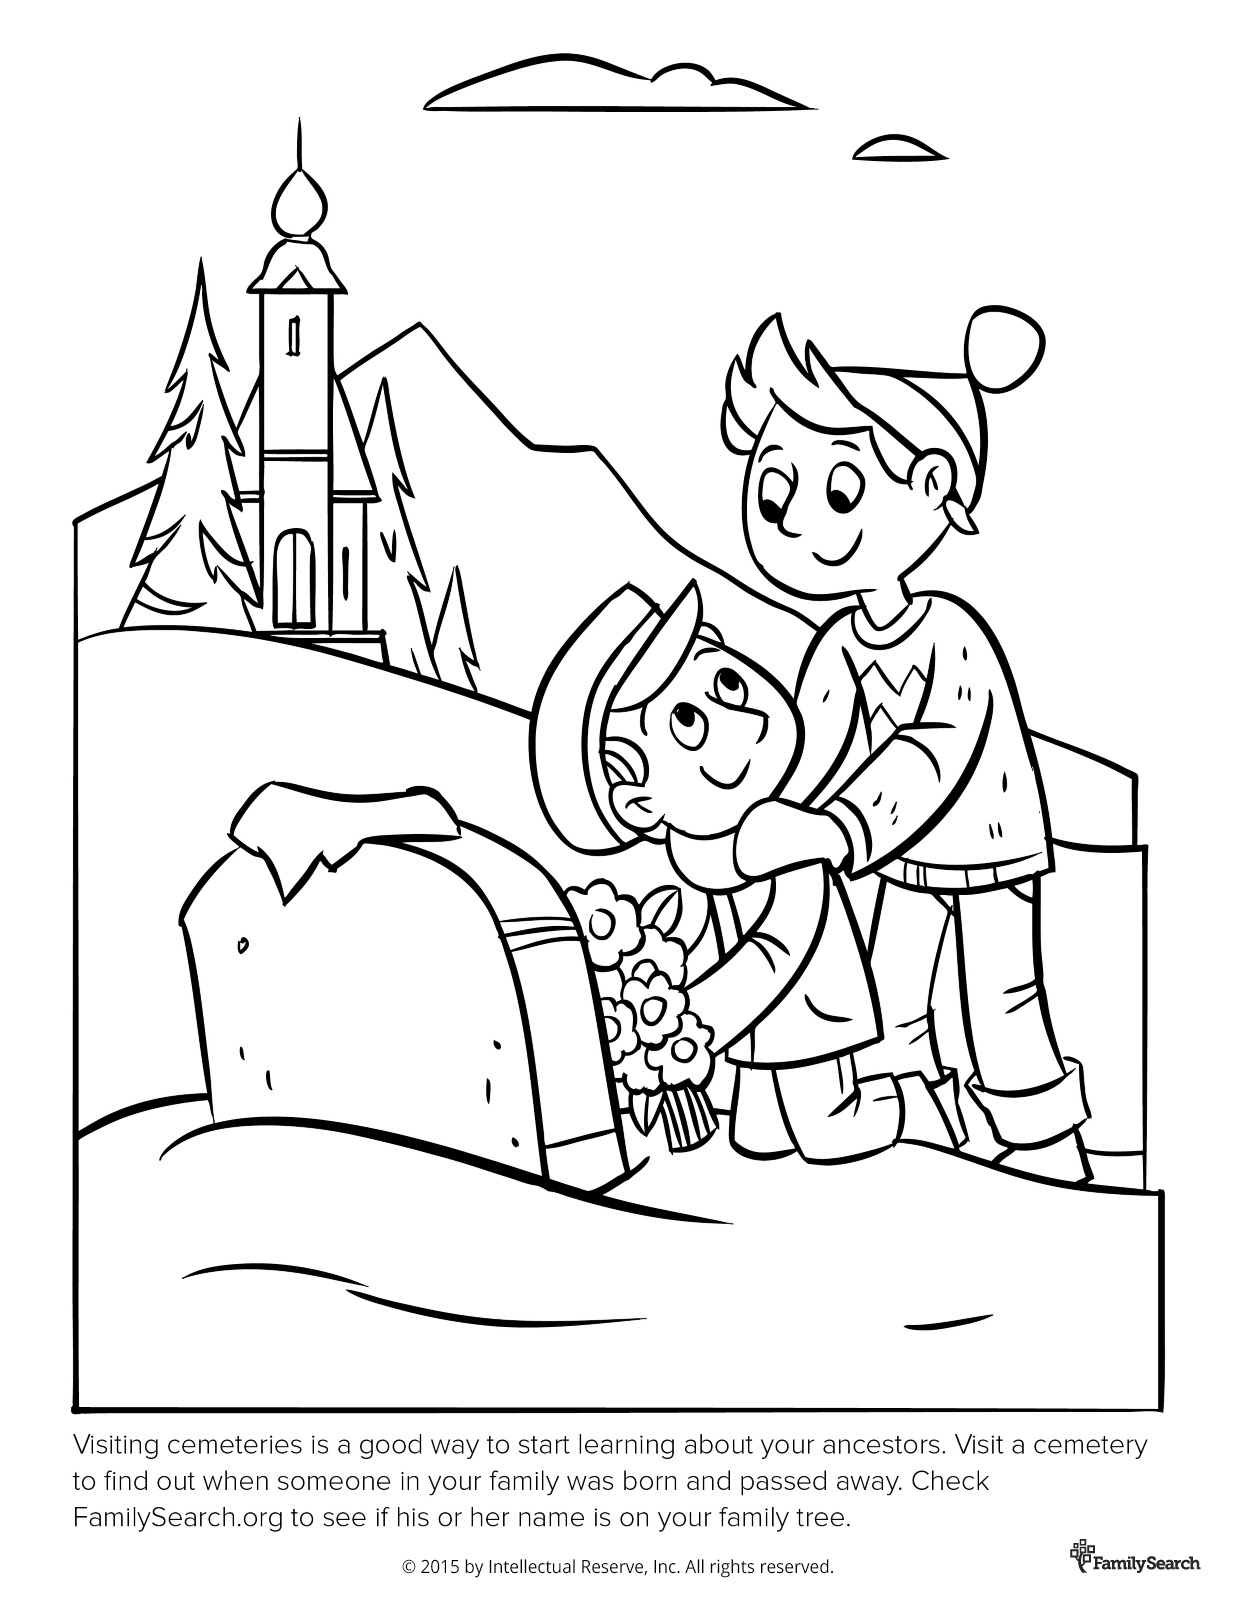 art history coloring book pages - photo#22